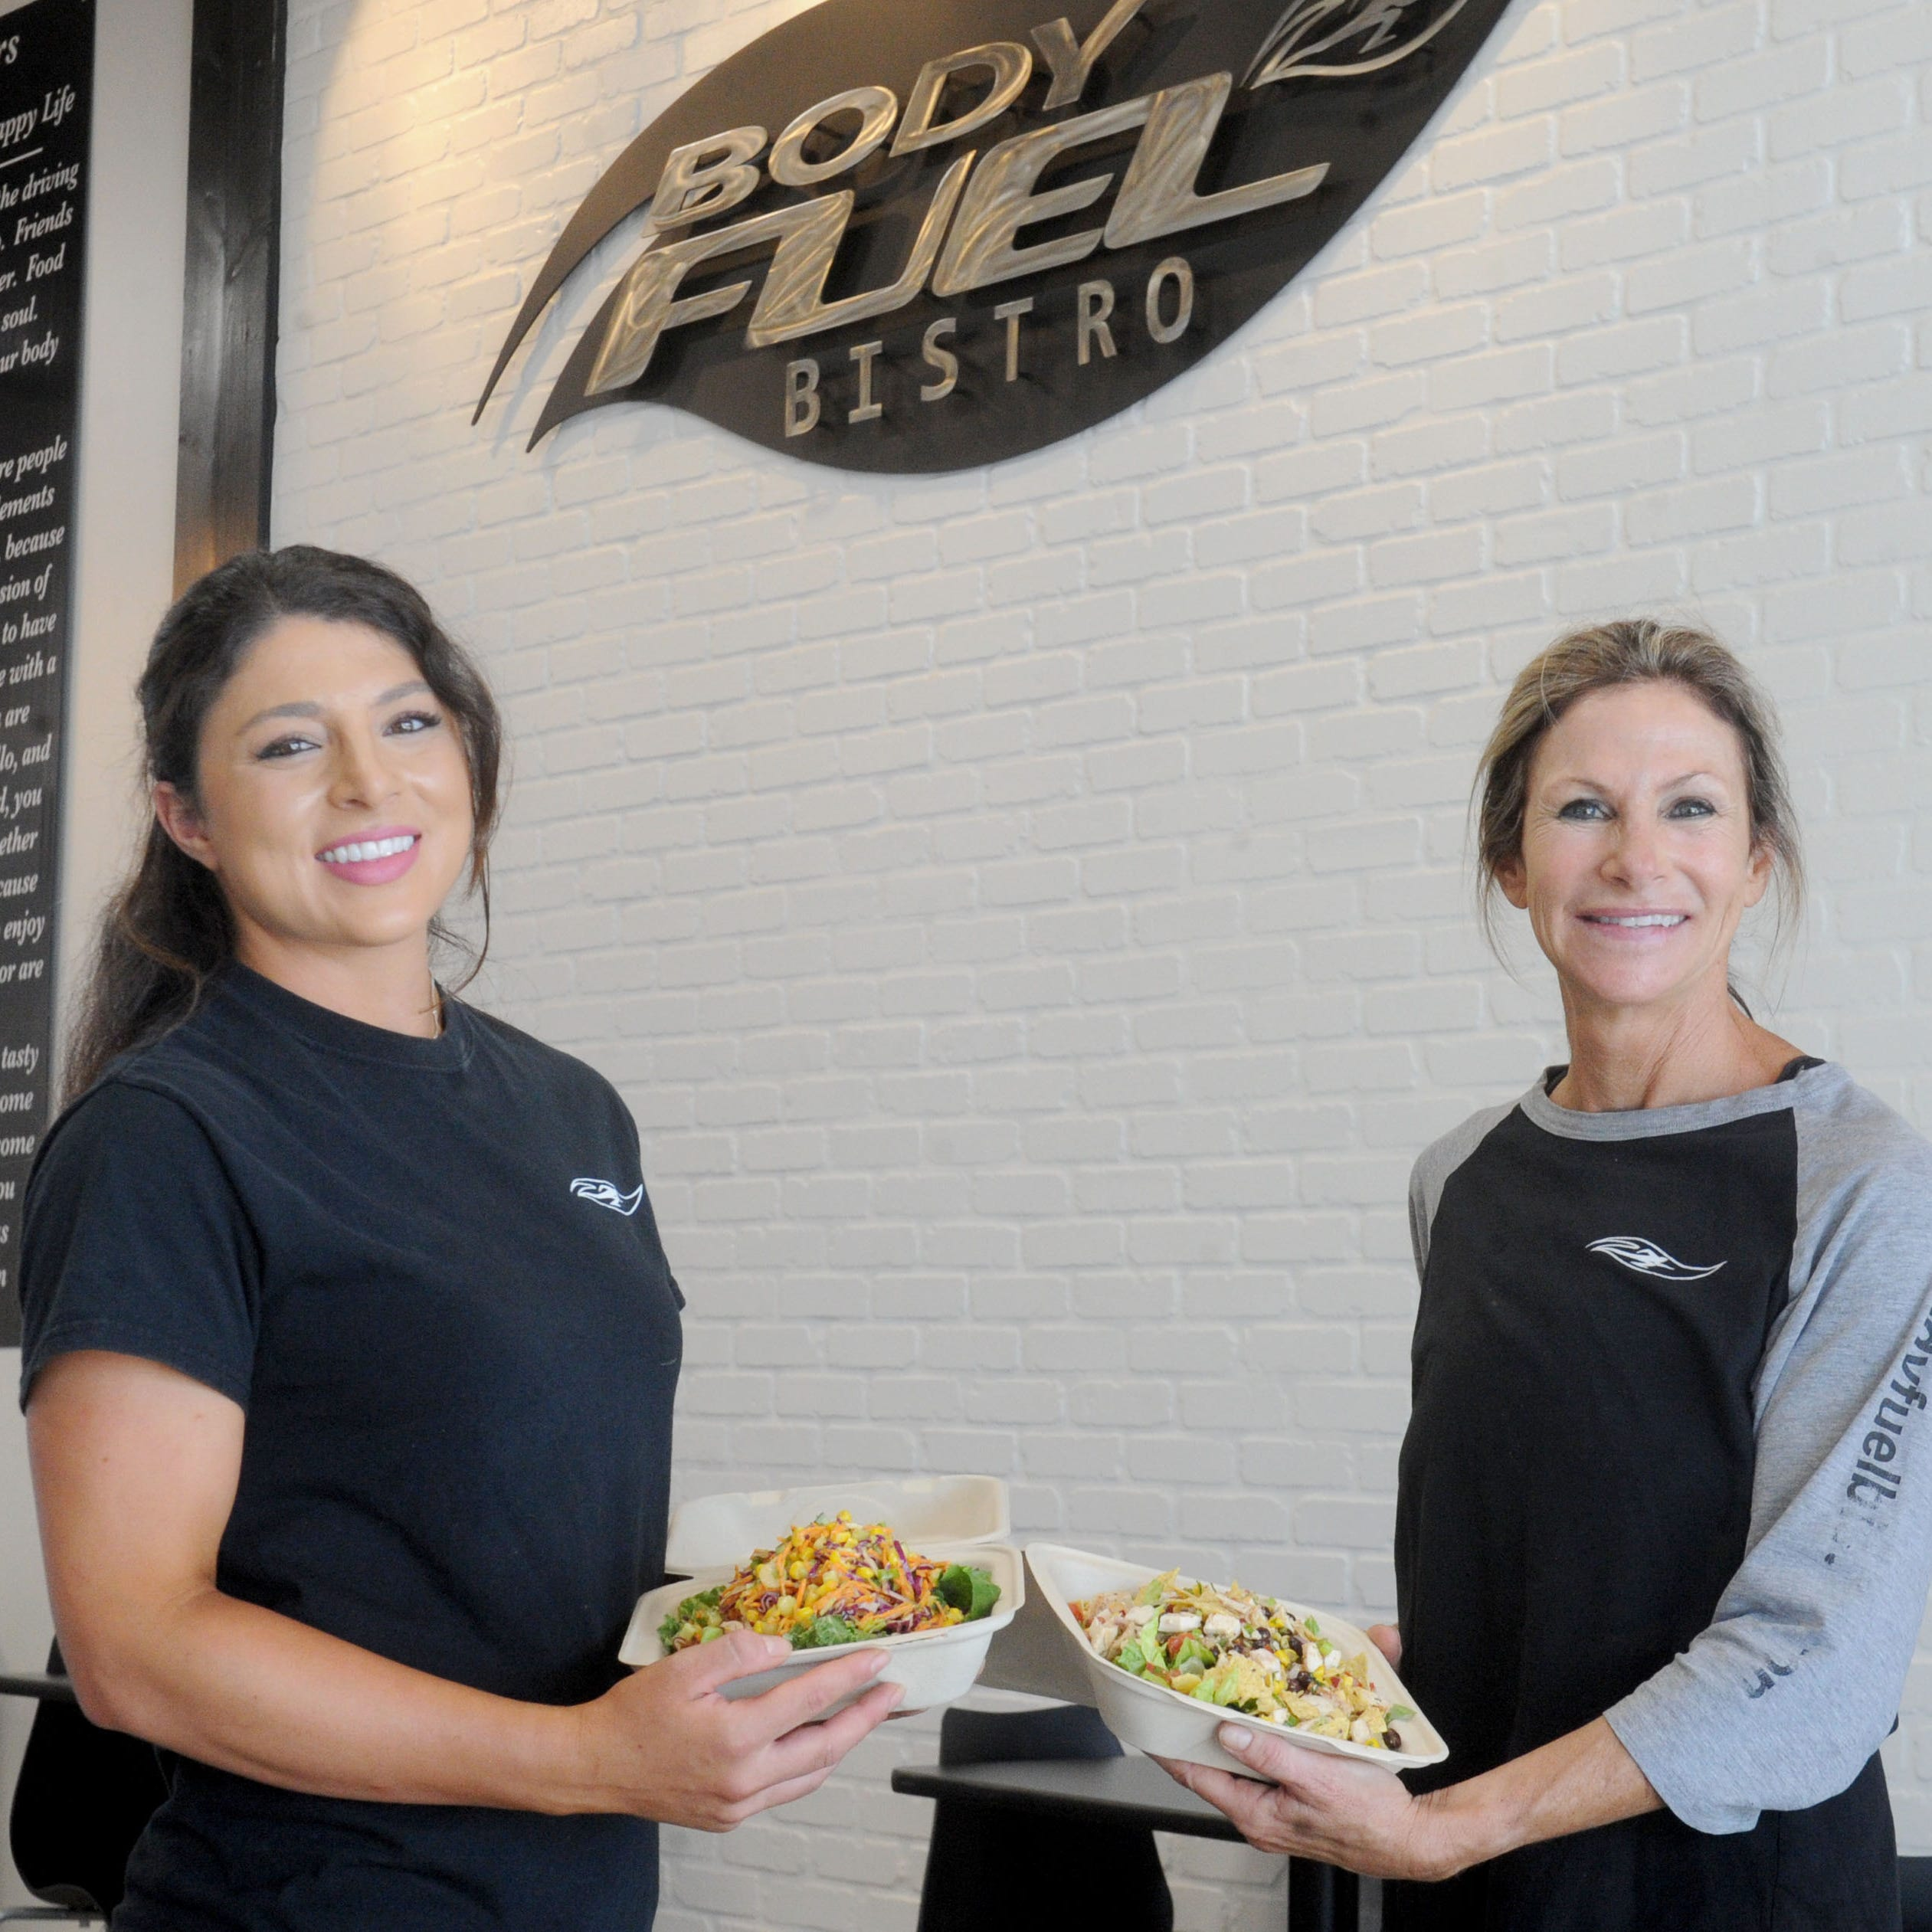 Hailey Wiggins, left, and her mother, Angie Wiggins, pose with salads-to-go at Body Fuel Bistro, their restaurant in Port Hueneme. Specializing in healthy fast food, the bistro will mark its first anniversary on Sept. 22, then participate in The Star's Wine & Food Experience featuring celebrity chef Graham Elliot Nov. 10 in Camarillo.